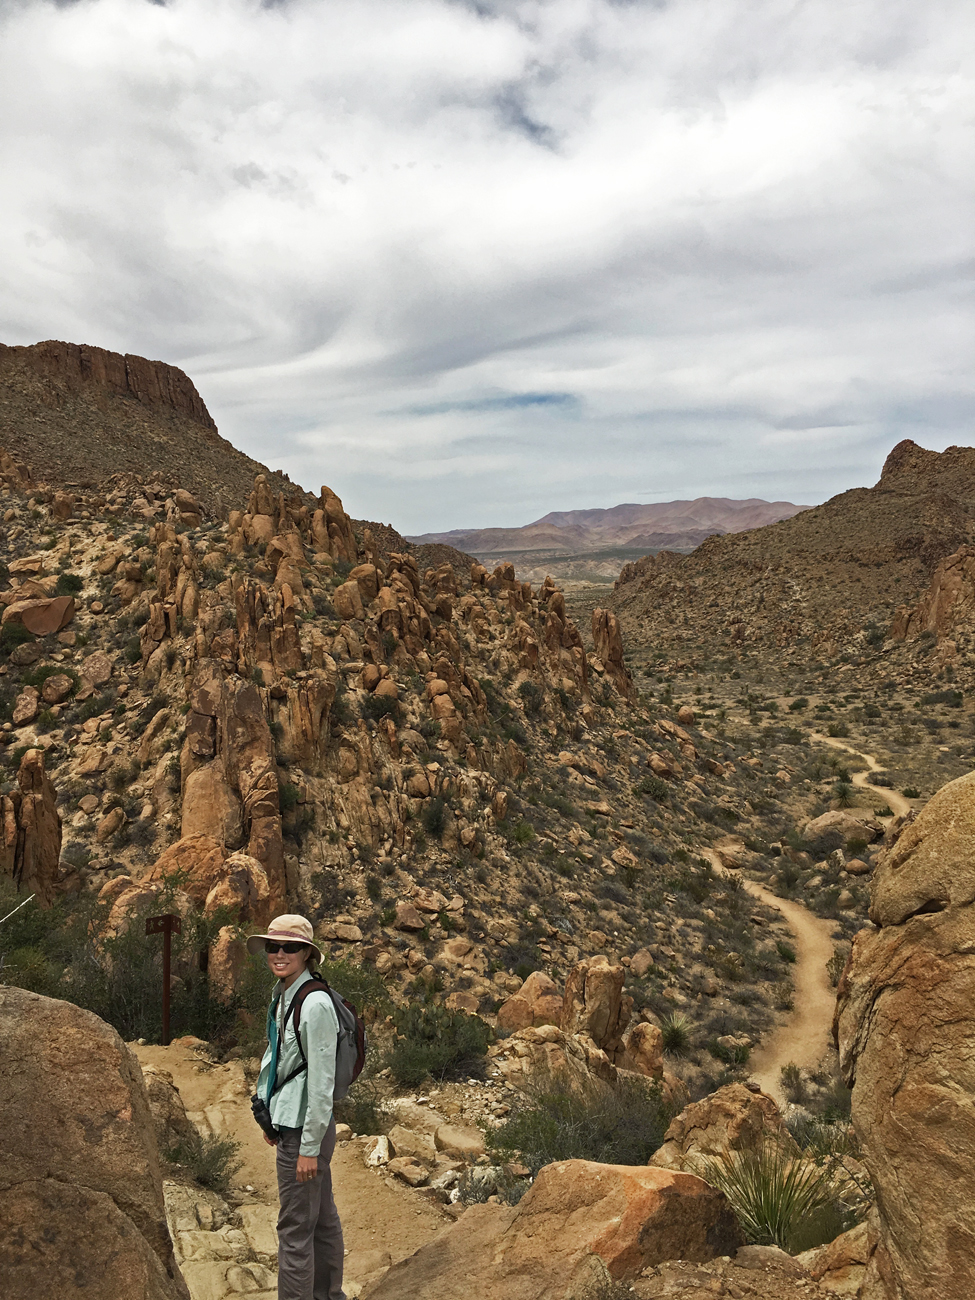 Christina on the Grapevine Hills trail where it climbs into the rocky outcrops in Big Bend National Park